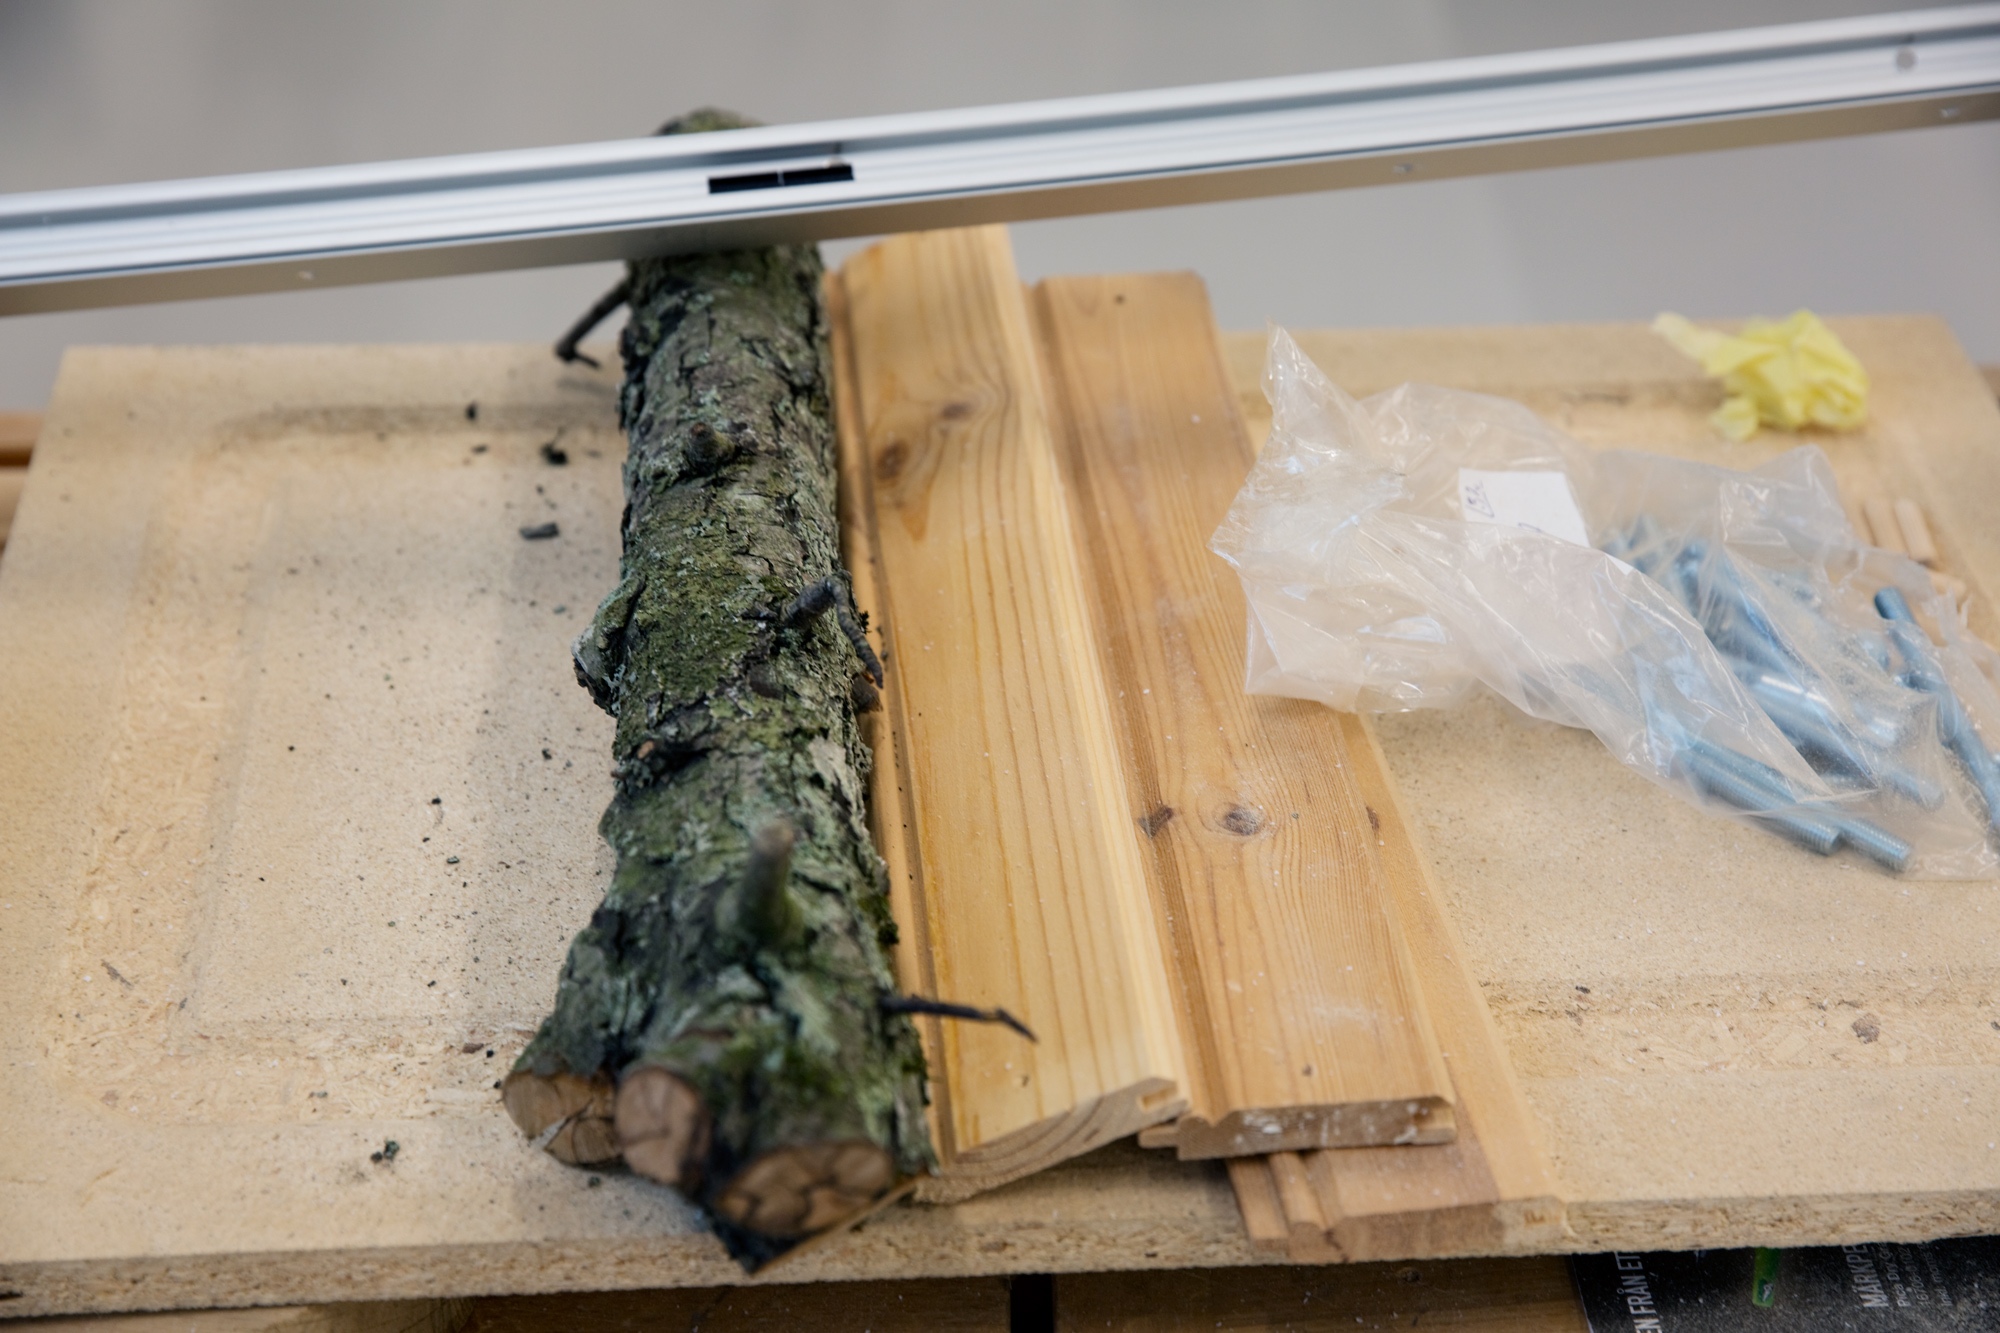 A tree branch, three short planks and plastic bags placed on a slab of chipboard.